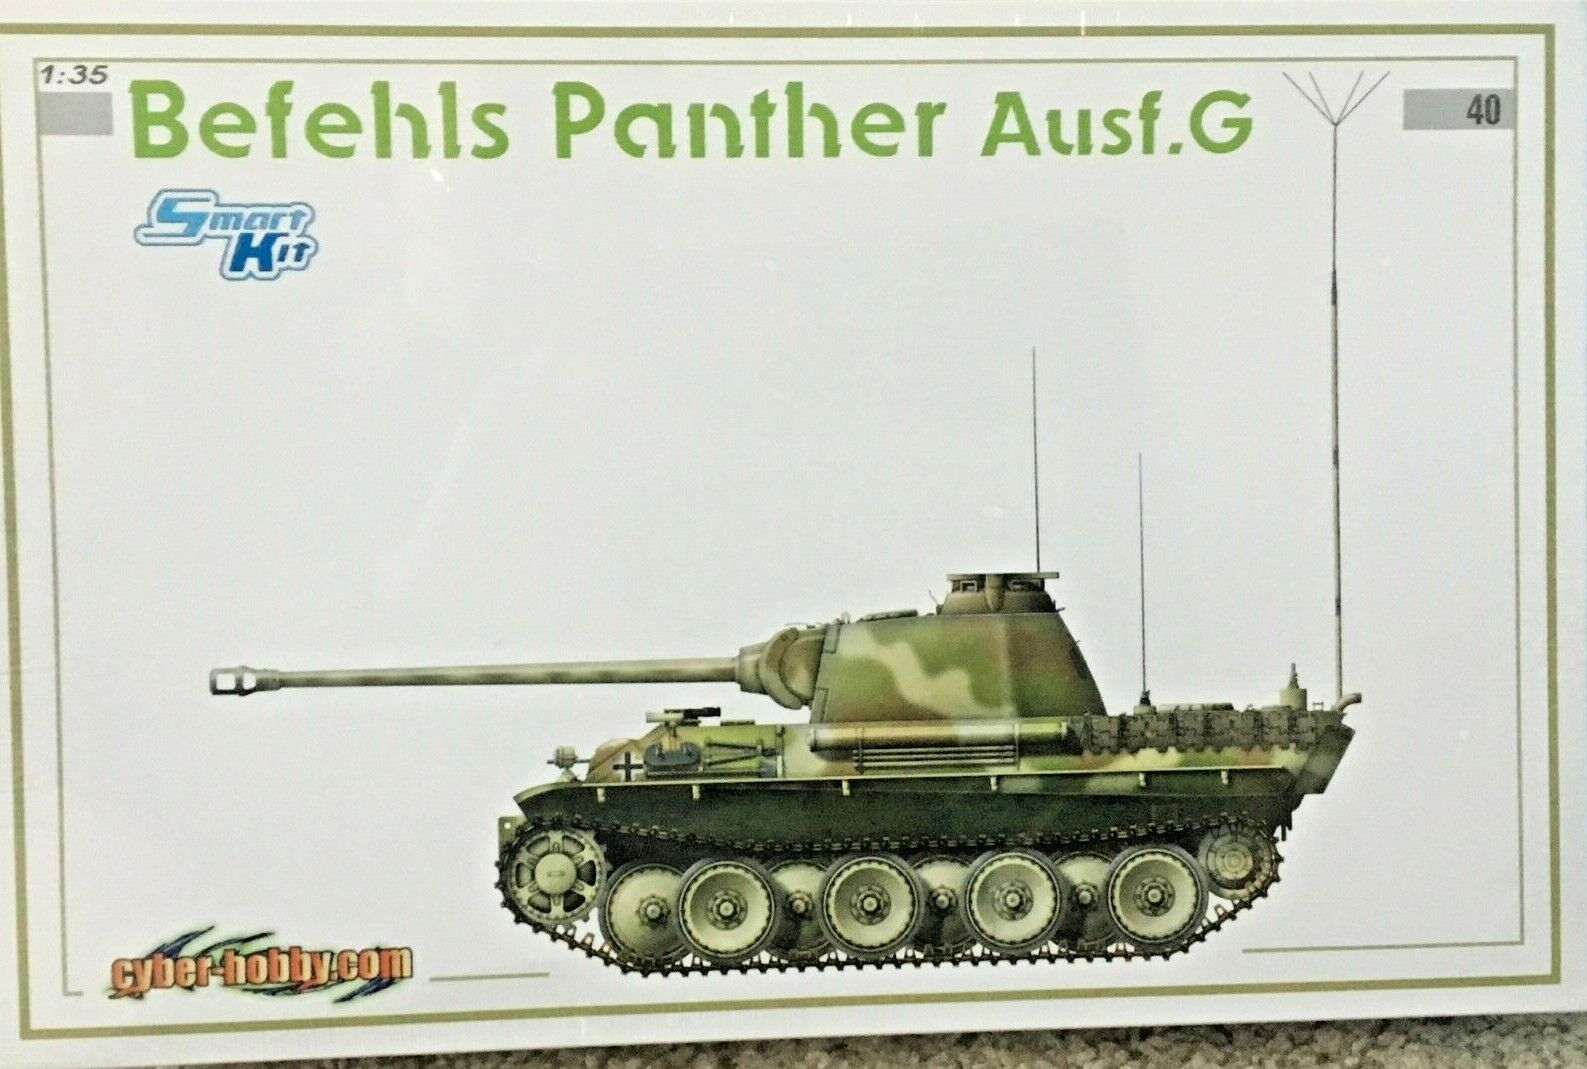 1 35 German Befehls PANTHER Ausf. G  Dragon Cyber Hobby White Box